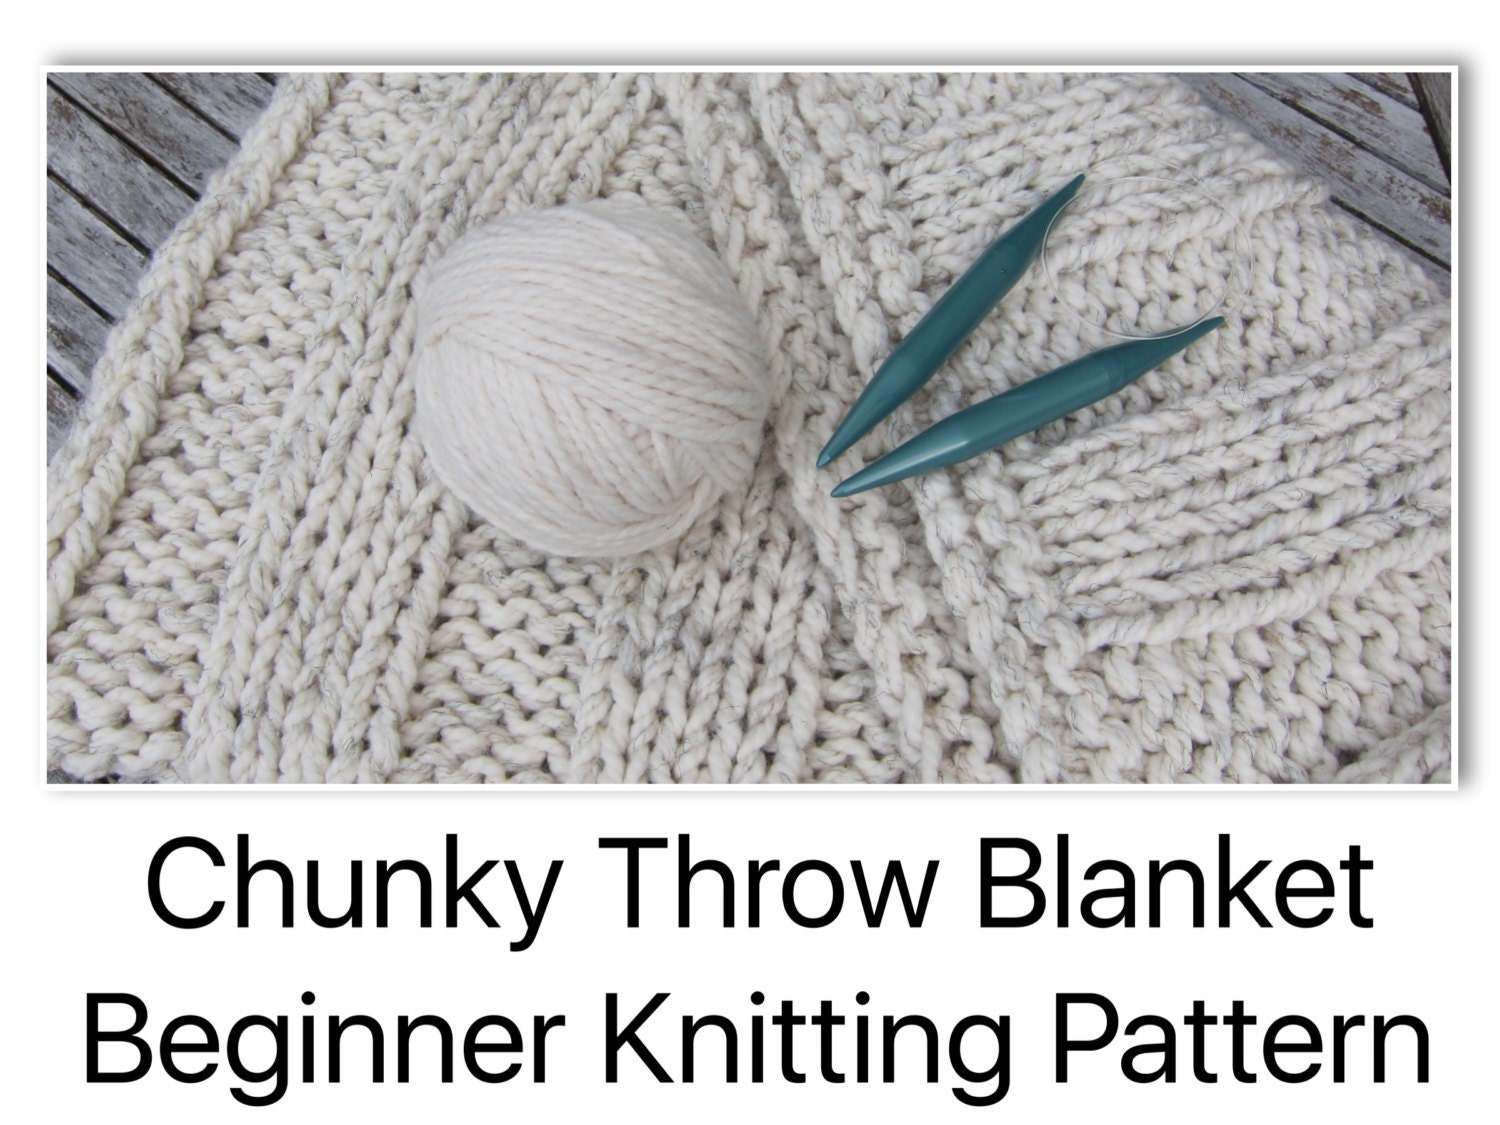 Knitting Pattern Blanket Throw : Chunky Bulky Throw Blanket Beginner Knitting Pattern With